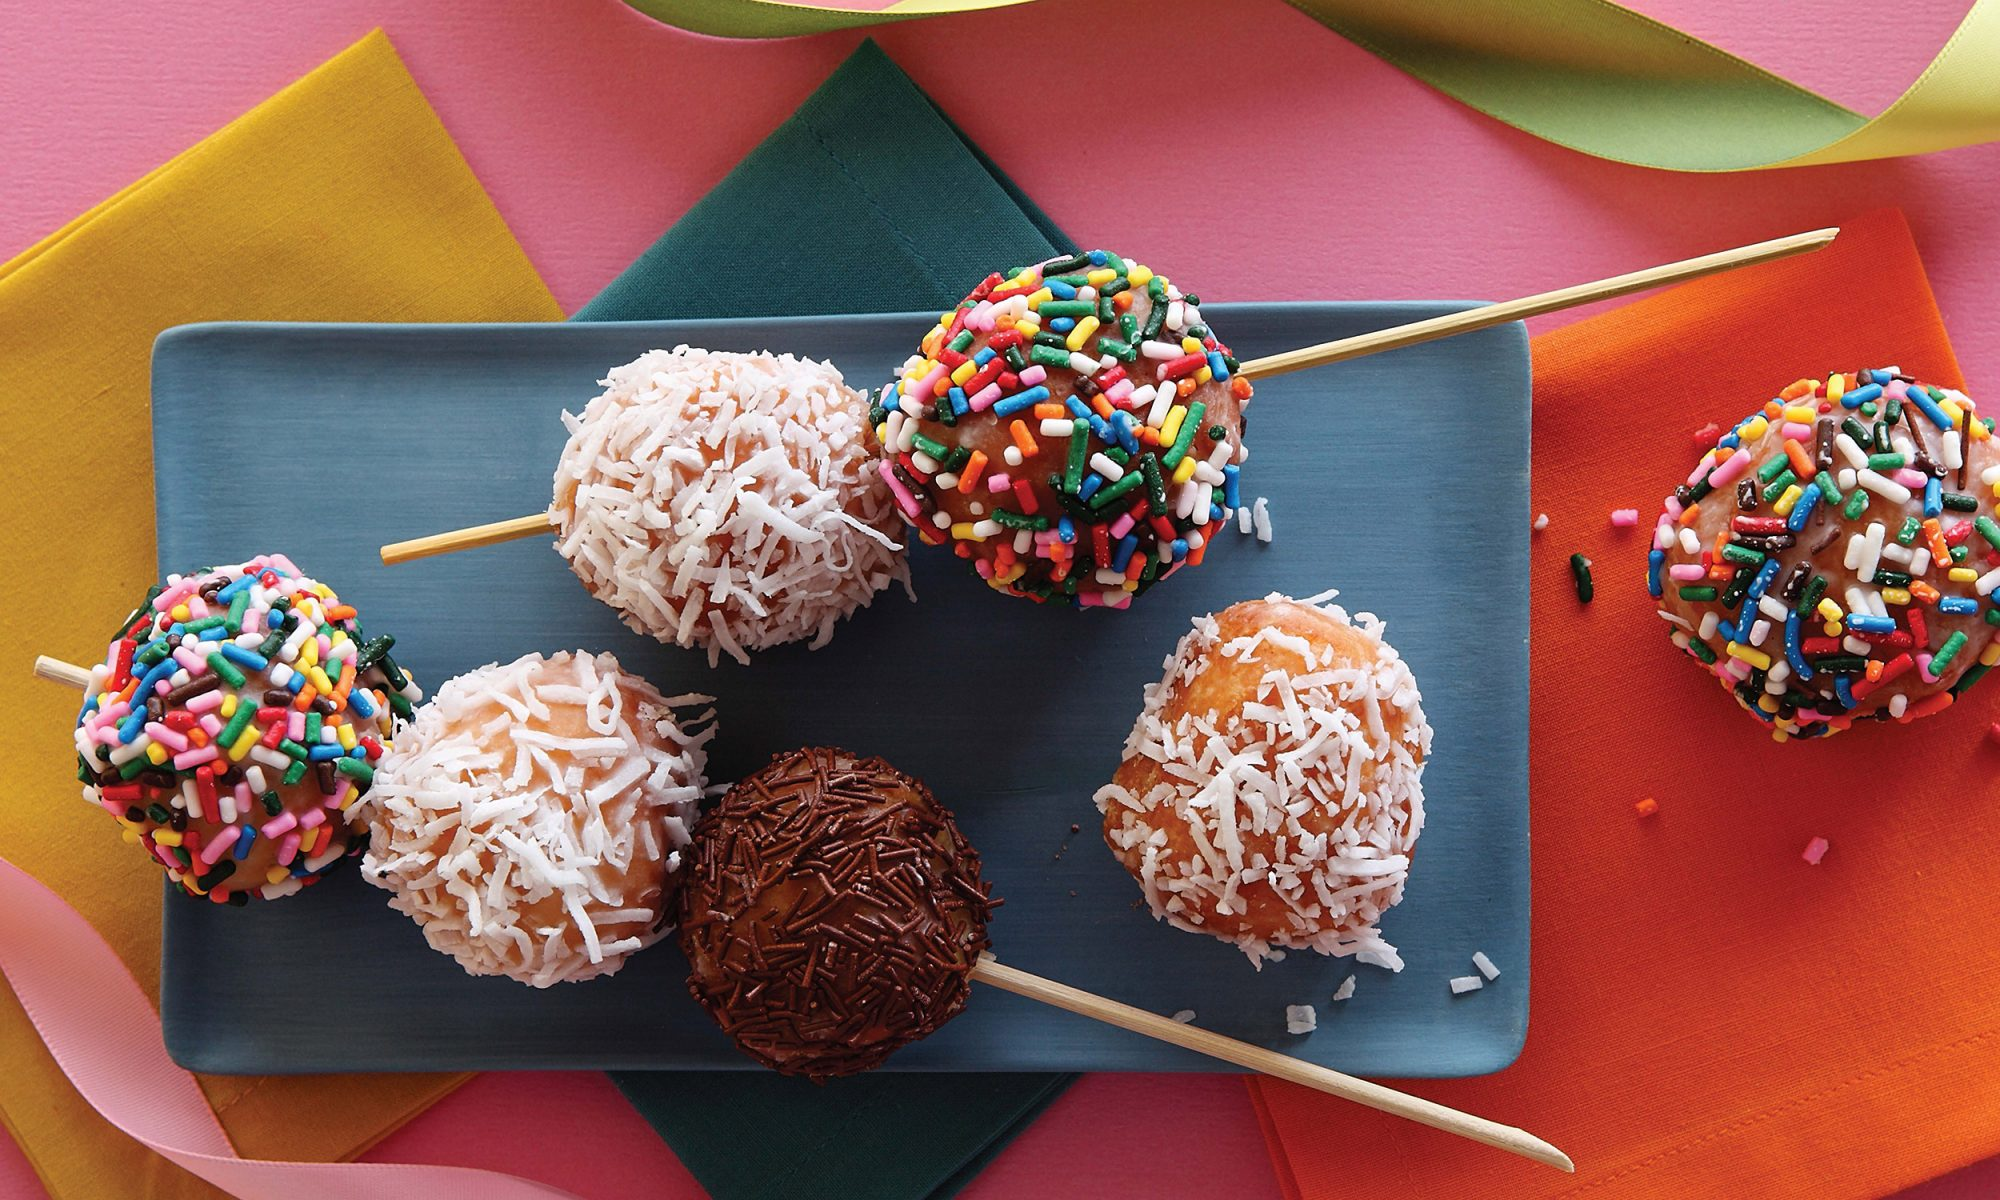 EC: Doughnut Holes with Sugar Glaze and Whatever Toppings Make You Happy